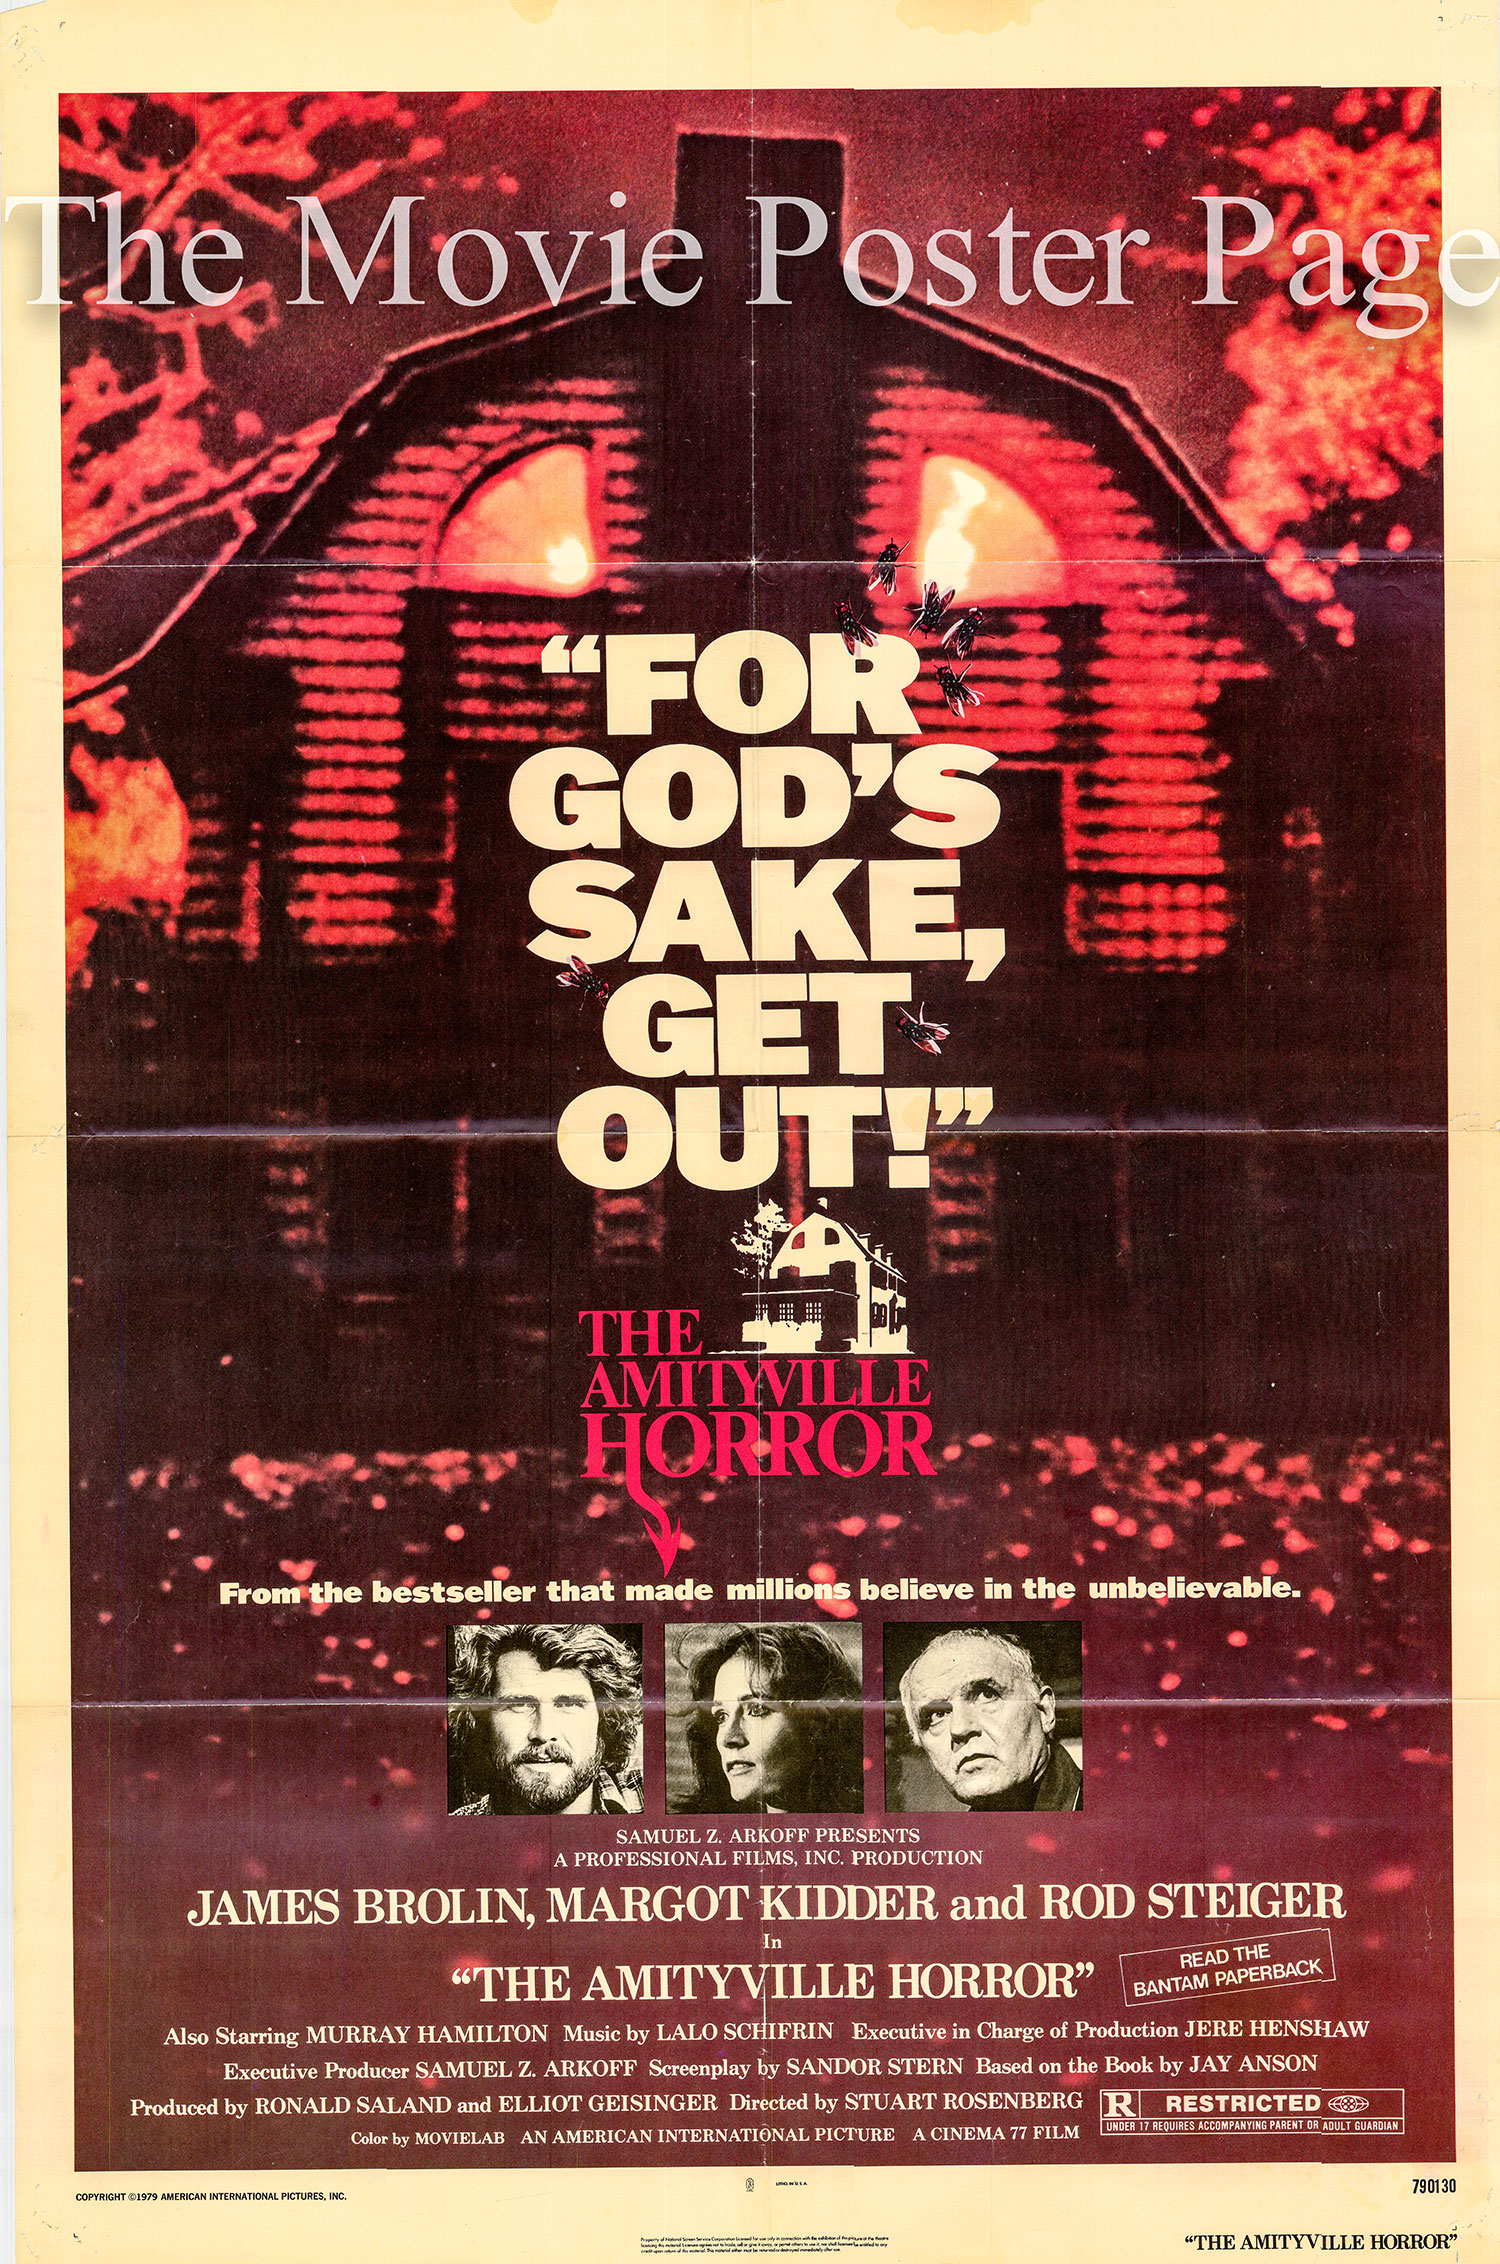 Pictured is a US one-sheet promotioanl poster for the 1979 Stuart Rosenberg film The Amityville Horror starring Rod Steiger.